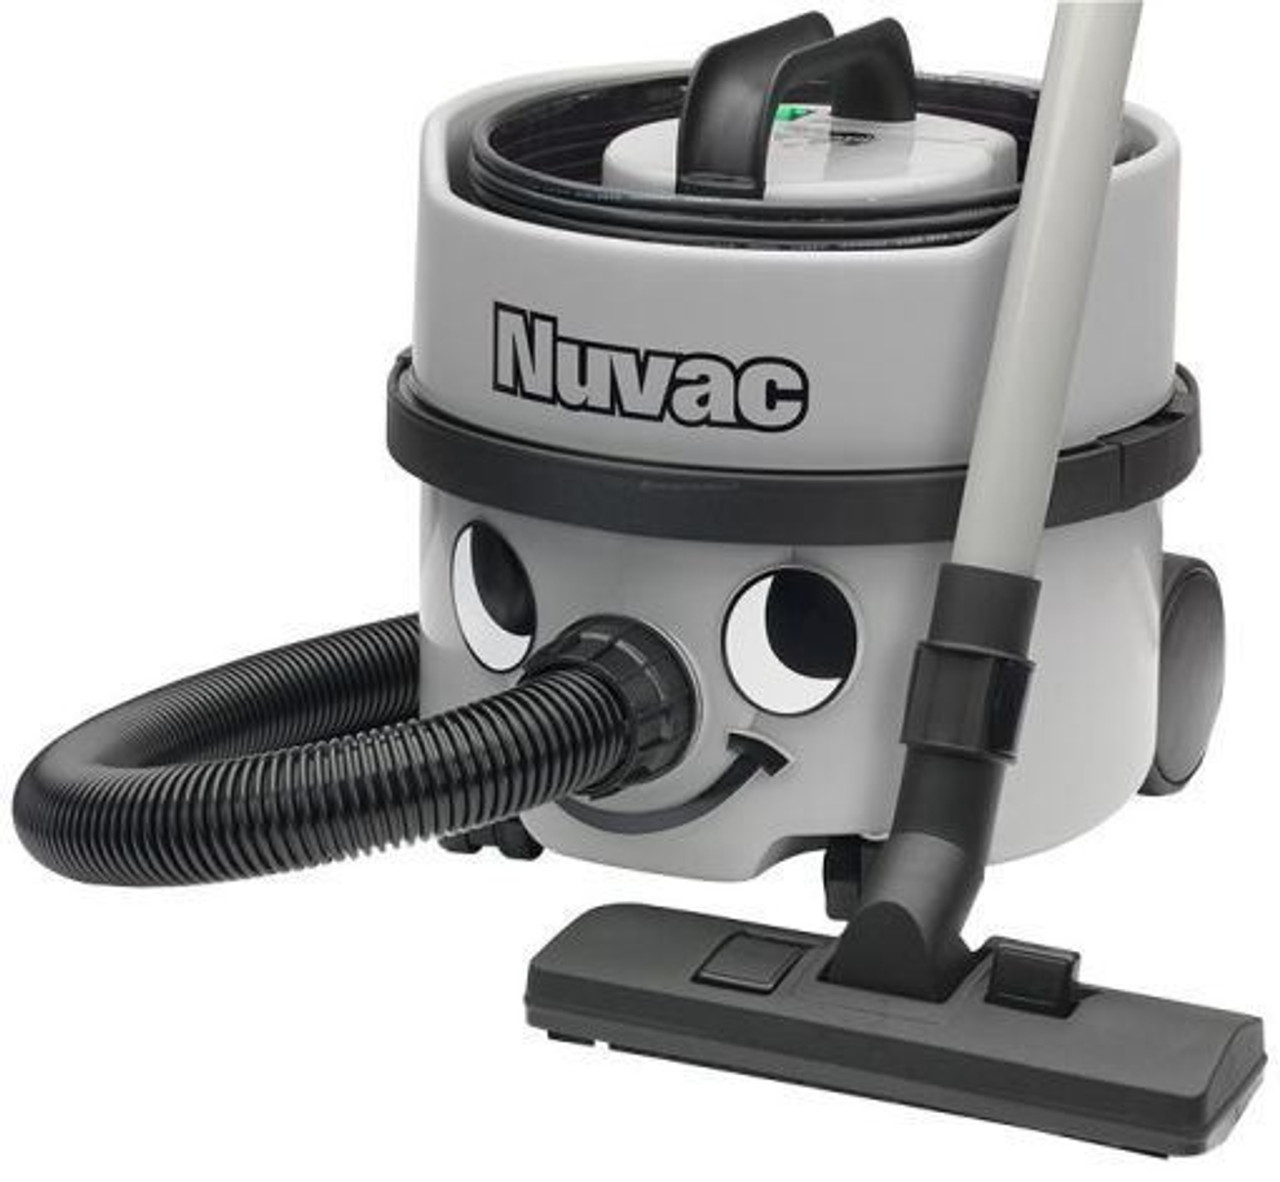 TO FIT NUMATIC HENRY HETTY NUVAC VACUUM CLEANER 32MM HOSE CUFF END KIT HOOVER